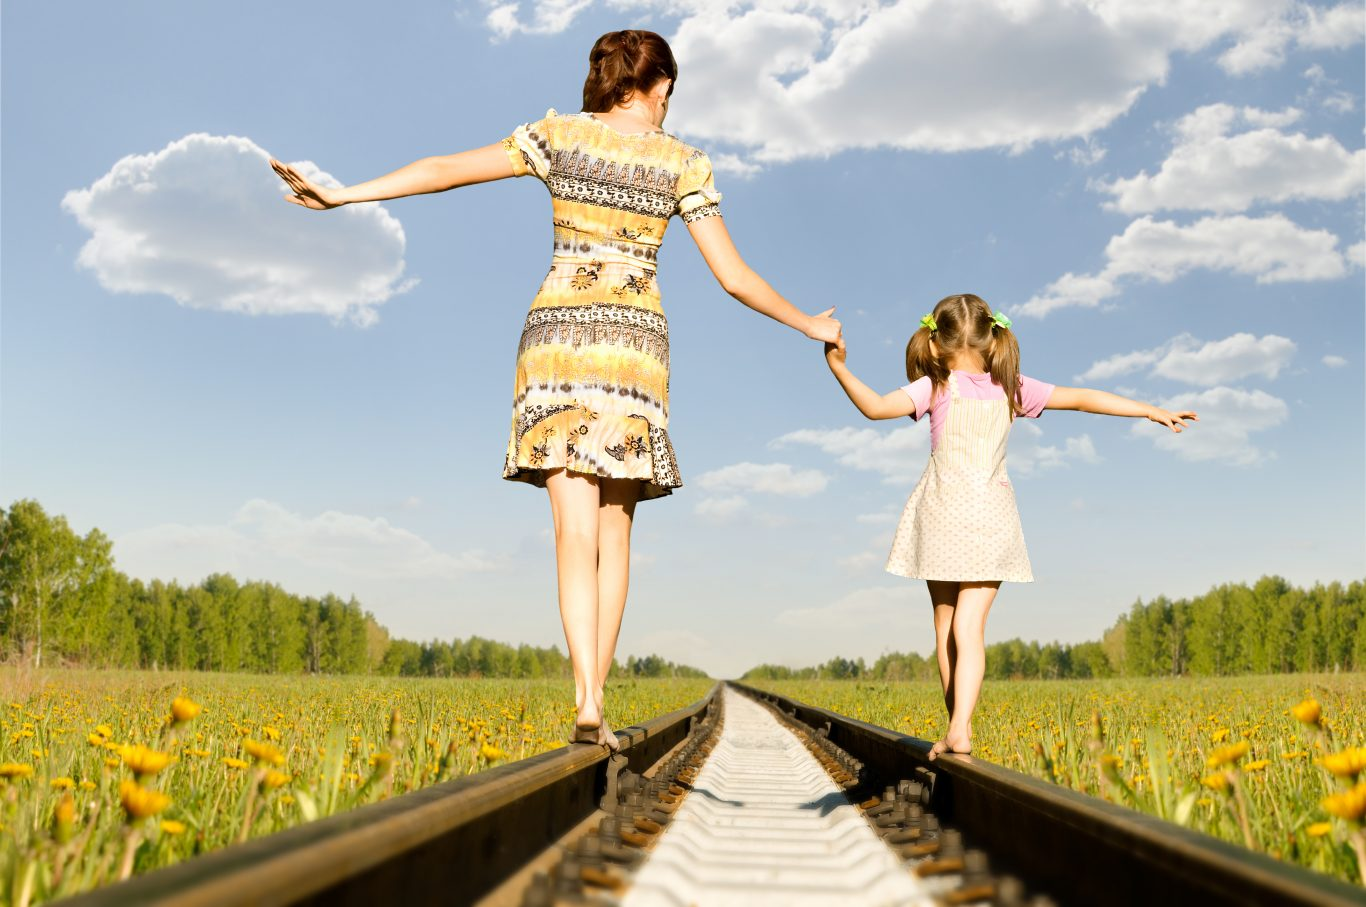 Balance with daughter on train tracks